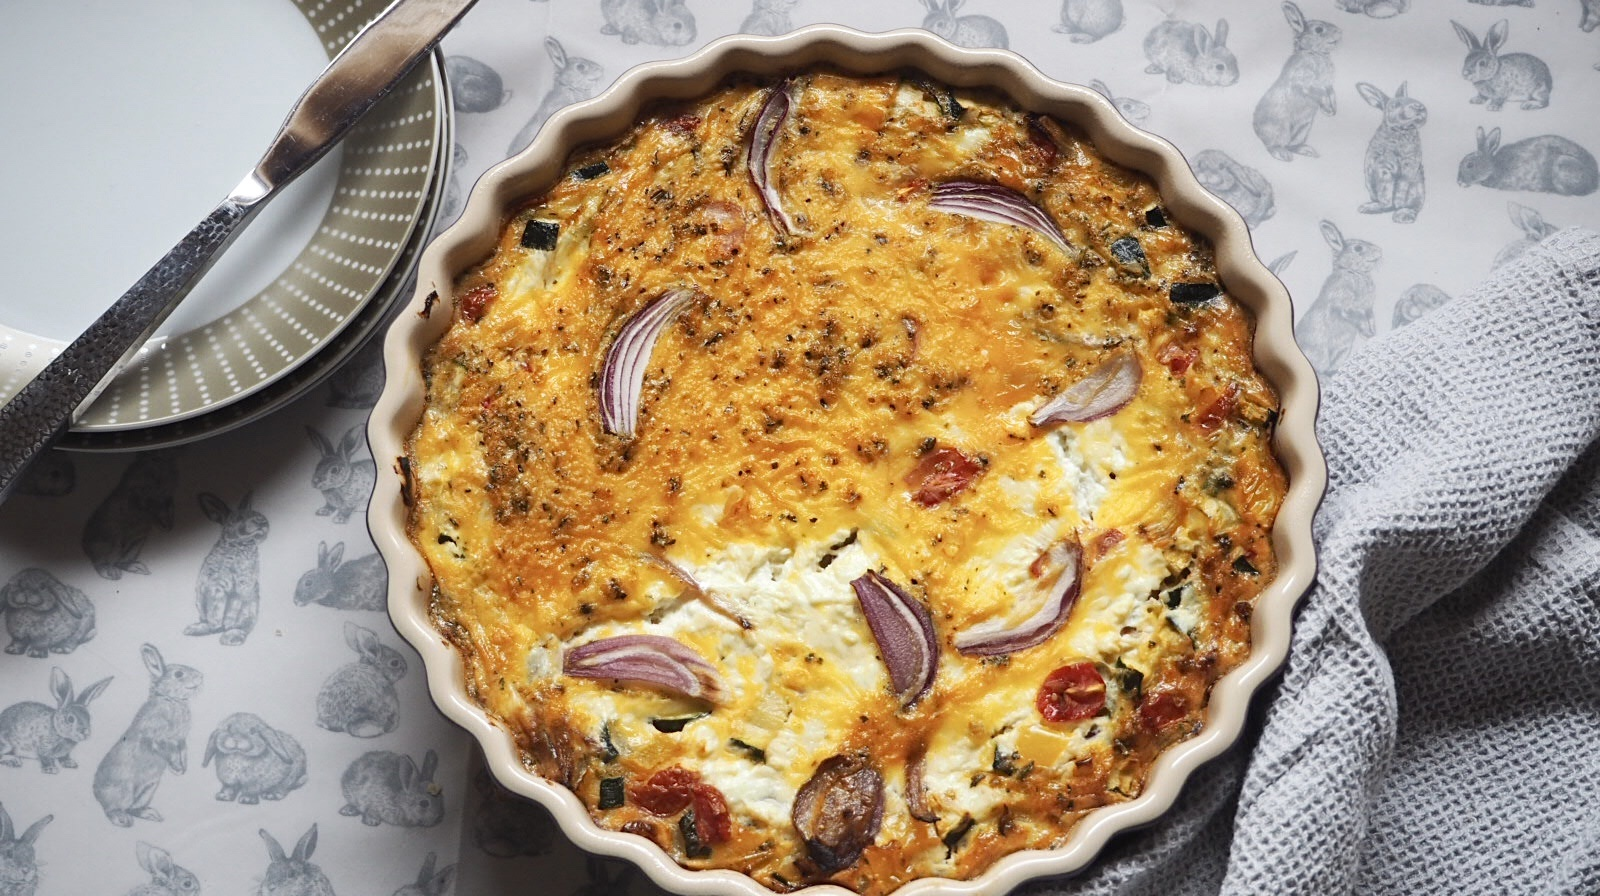 Summer Vegetable Crustless Quiche | Slimming World Sunday #syn #free #slimming #world #breakfast #lunch #dinner #snack